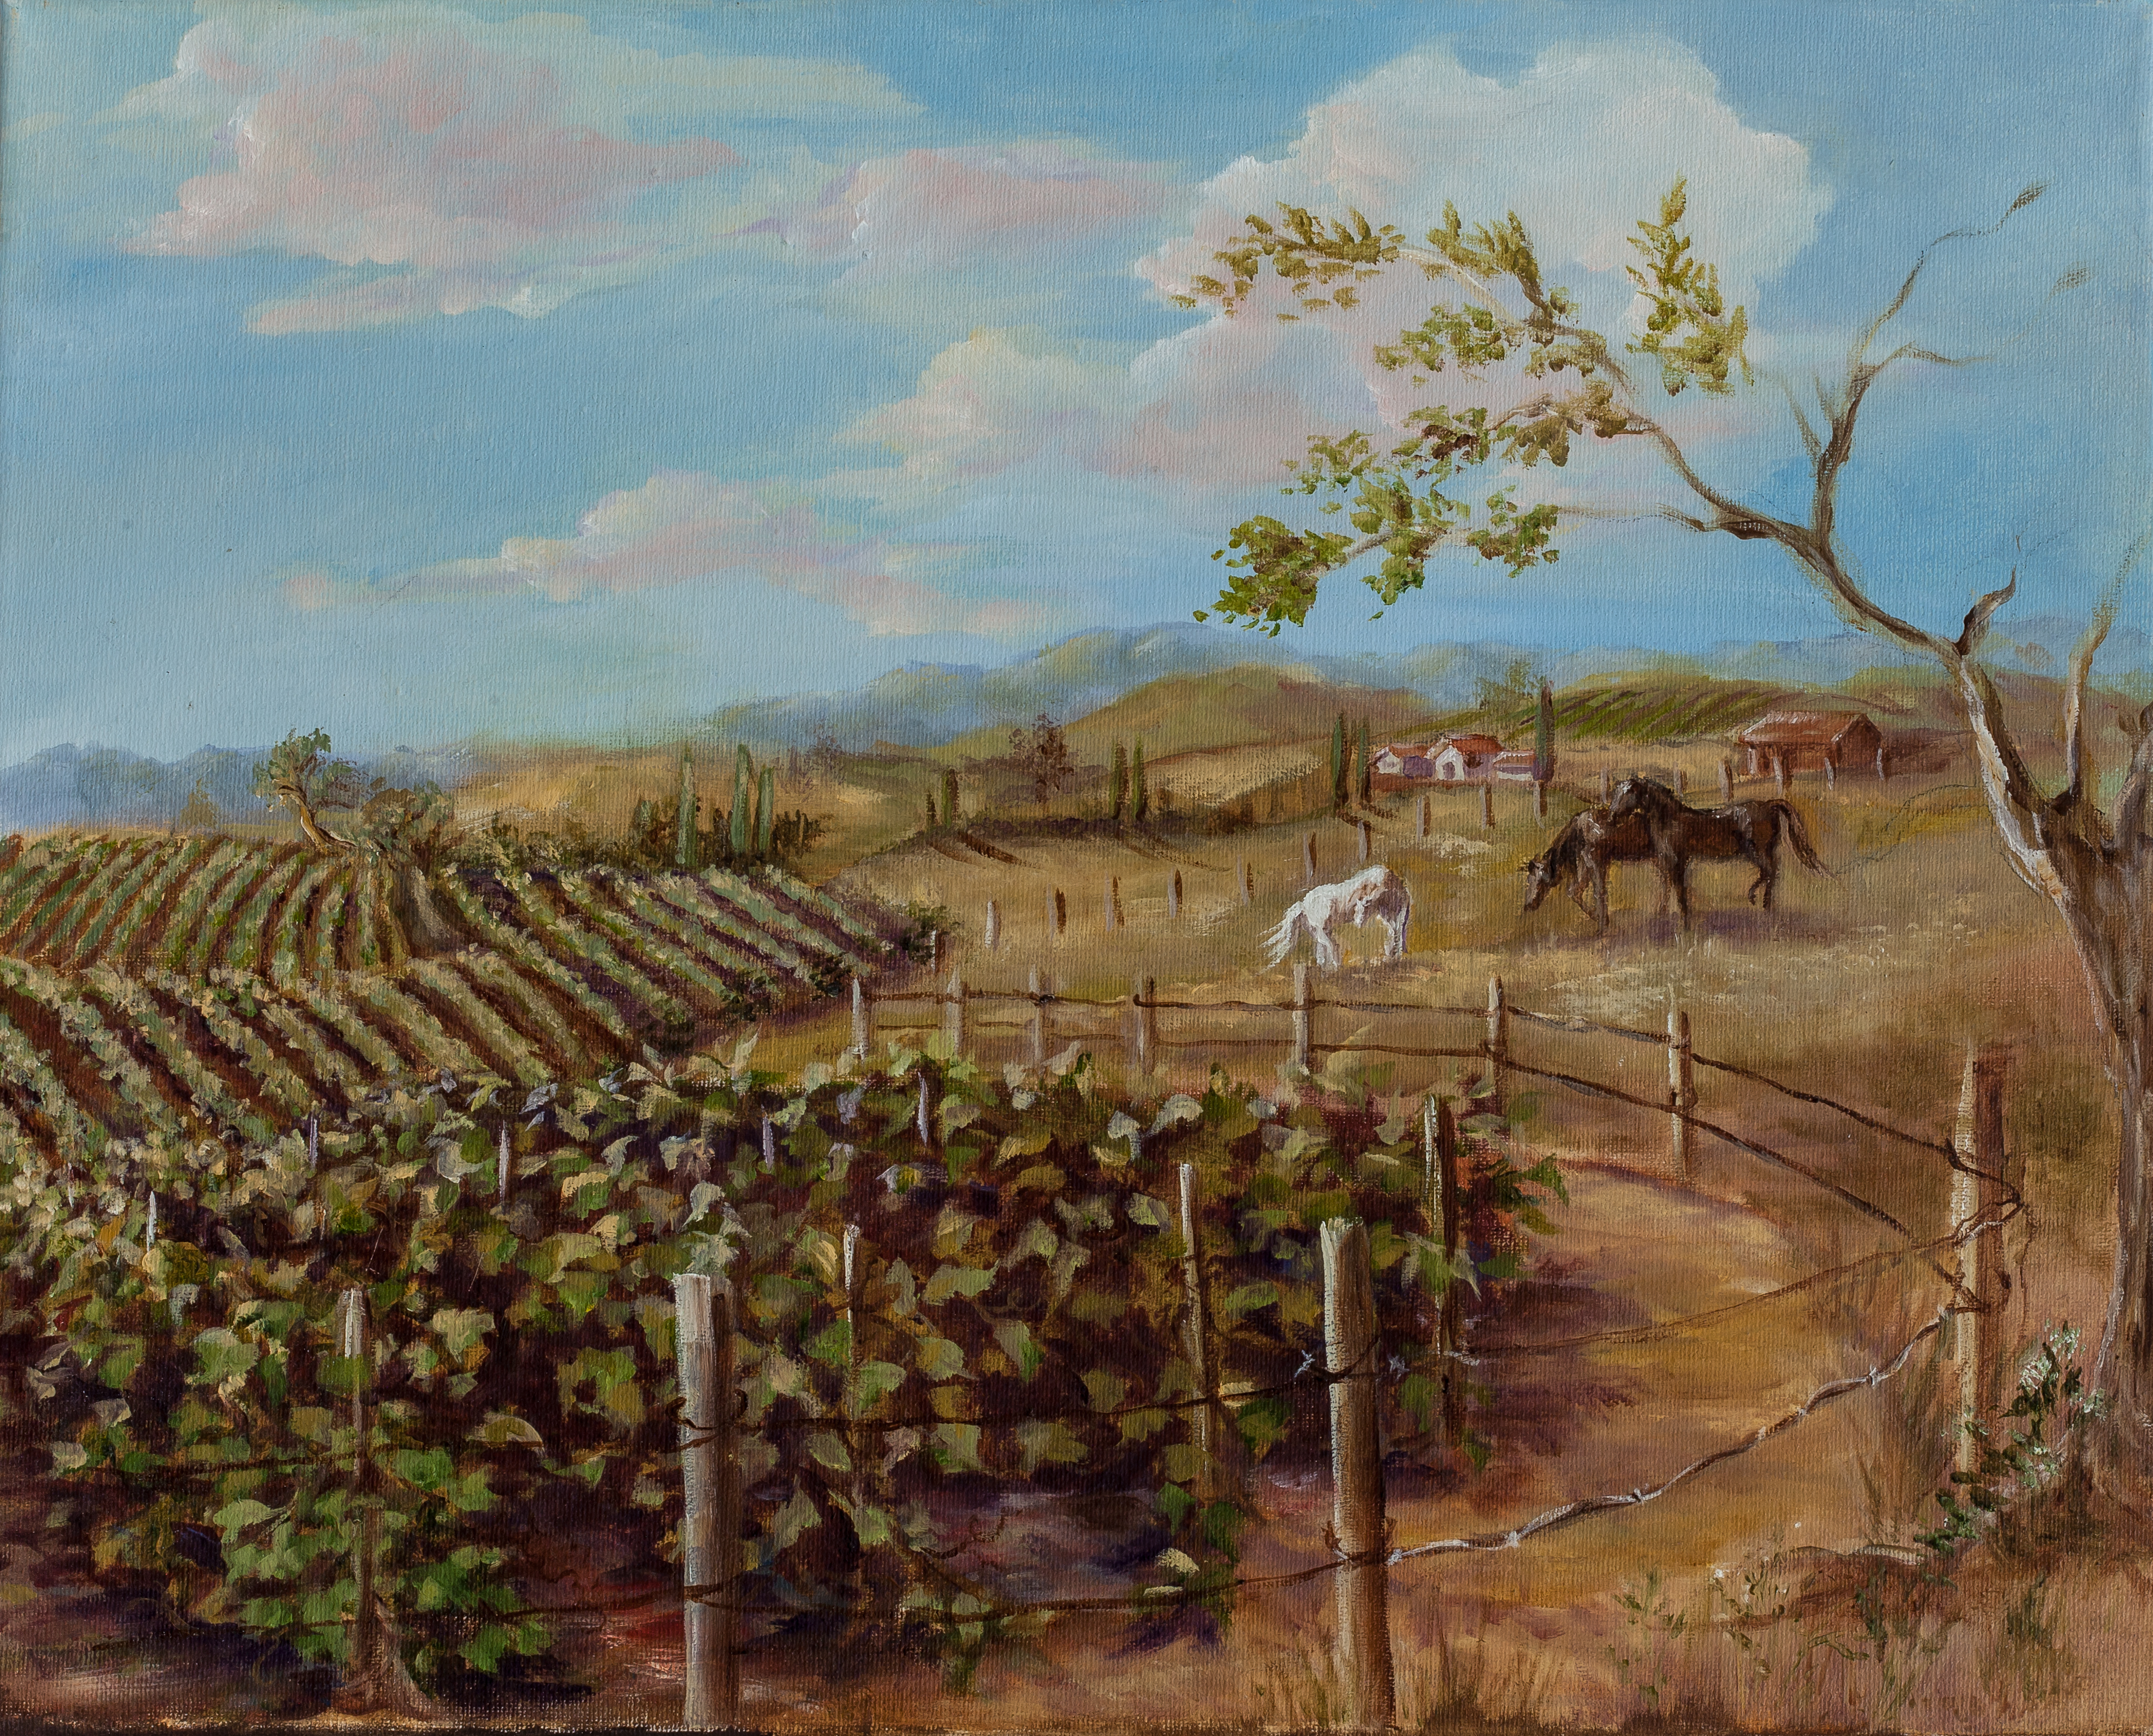 TEMECULA VINEYARD RANCH 1